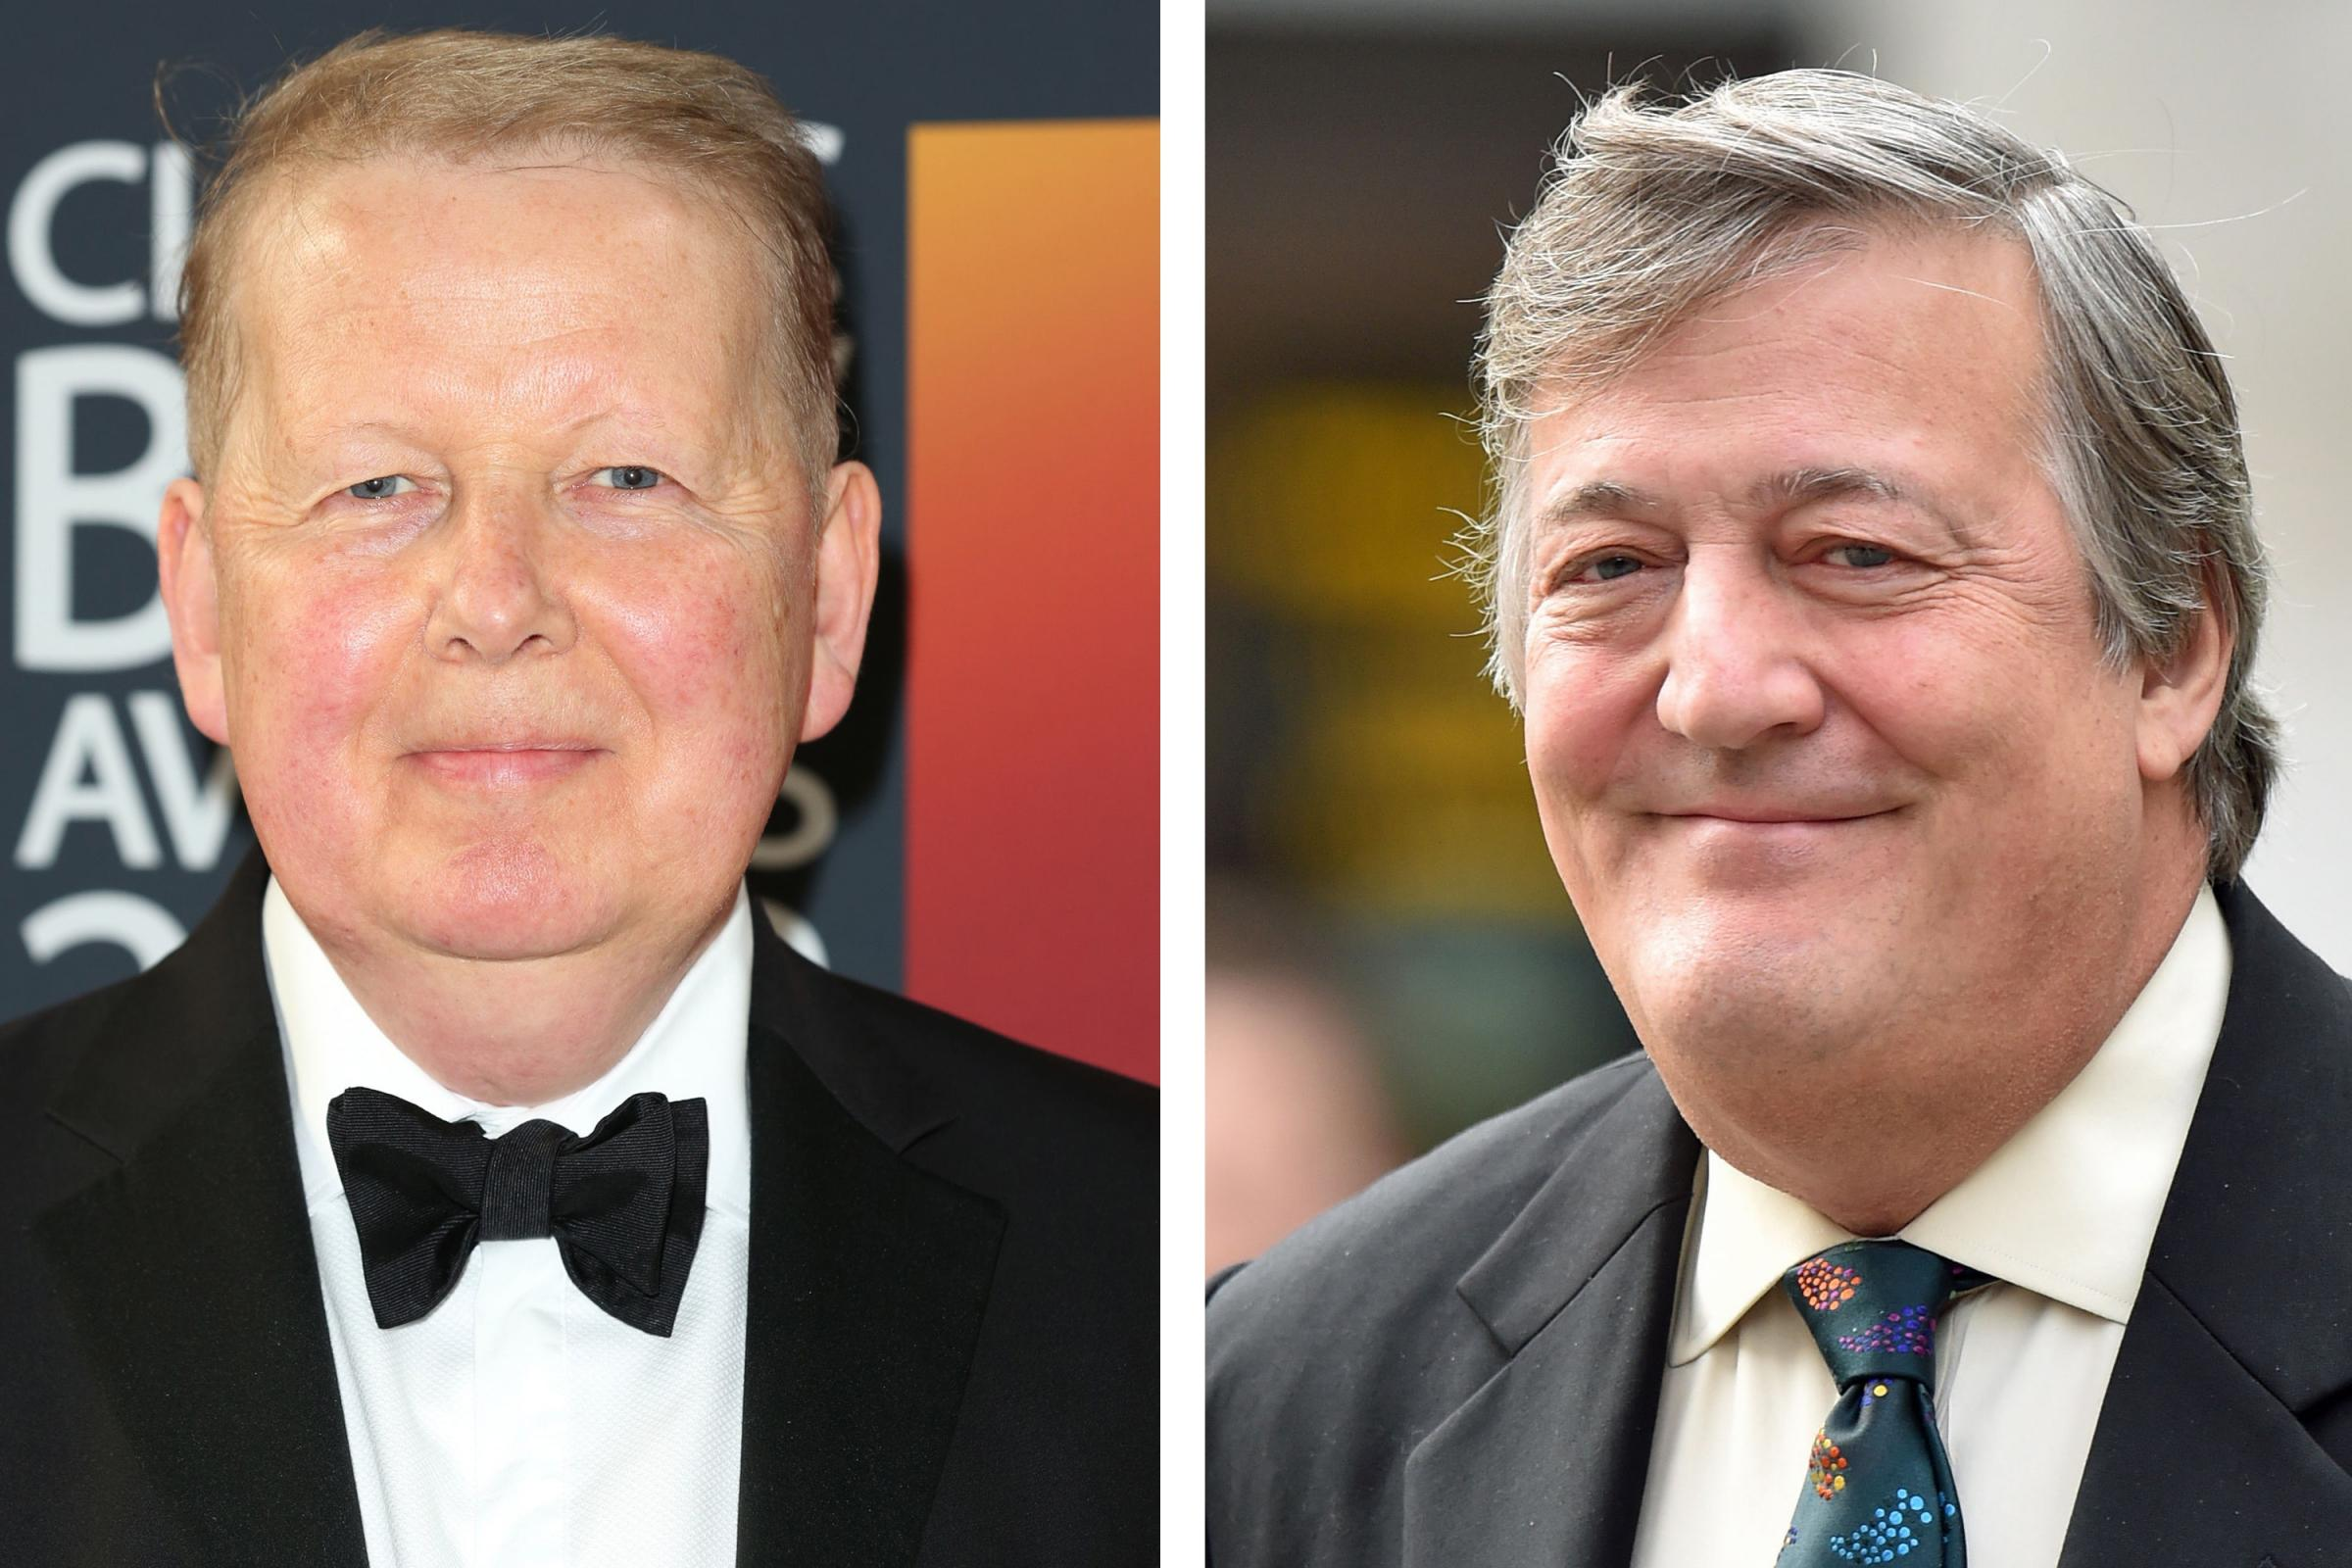 Bill Turnbull and Stephen Fry